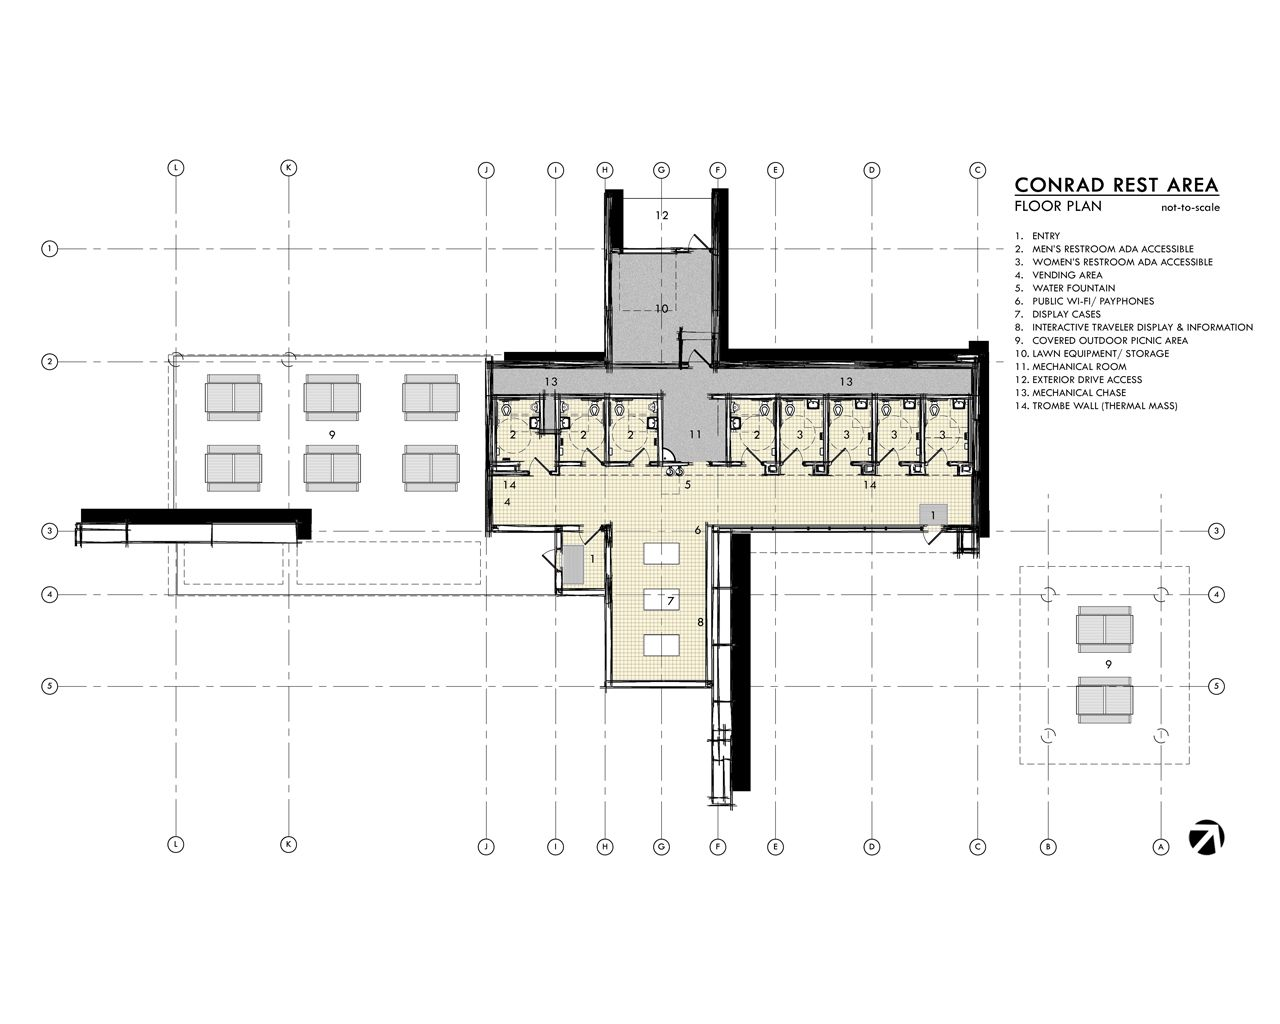 09 Floor Plan Drawing In 2020 Floor Plan Drawing Rest Area Floor Plans